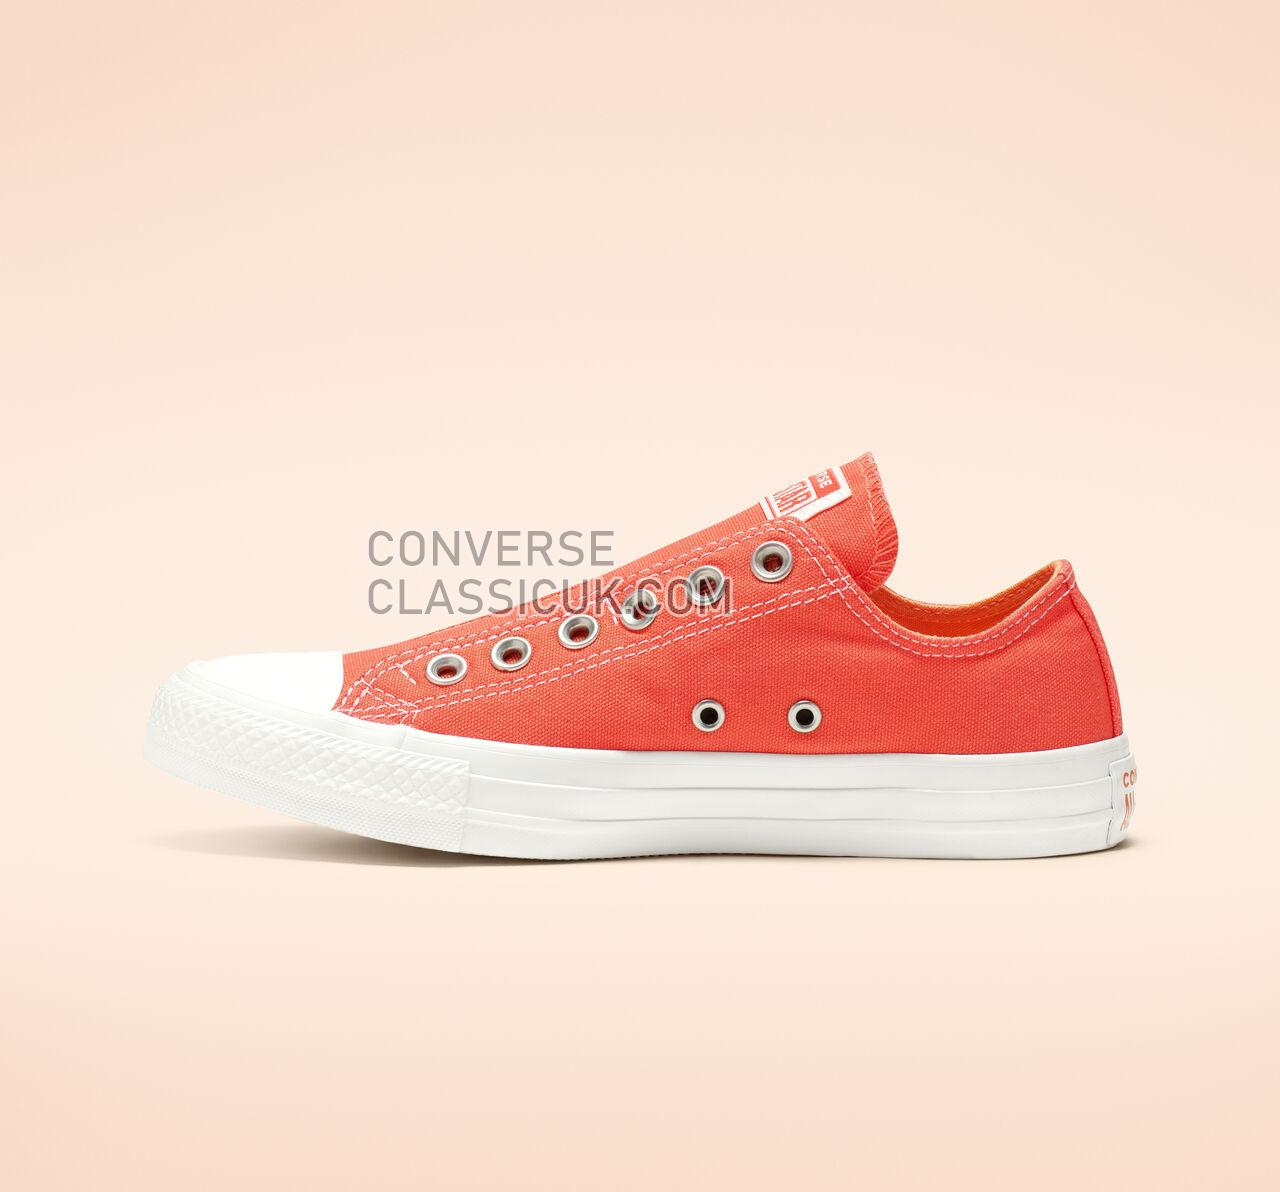 Converse Chuck Taylor All Star Slip Mens Womens Unisex 164303C Turf Orange/Melon Baller/White Shoes